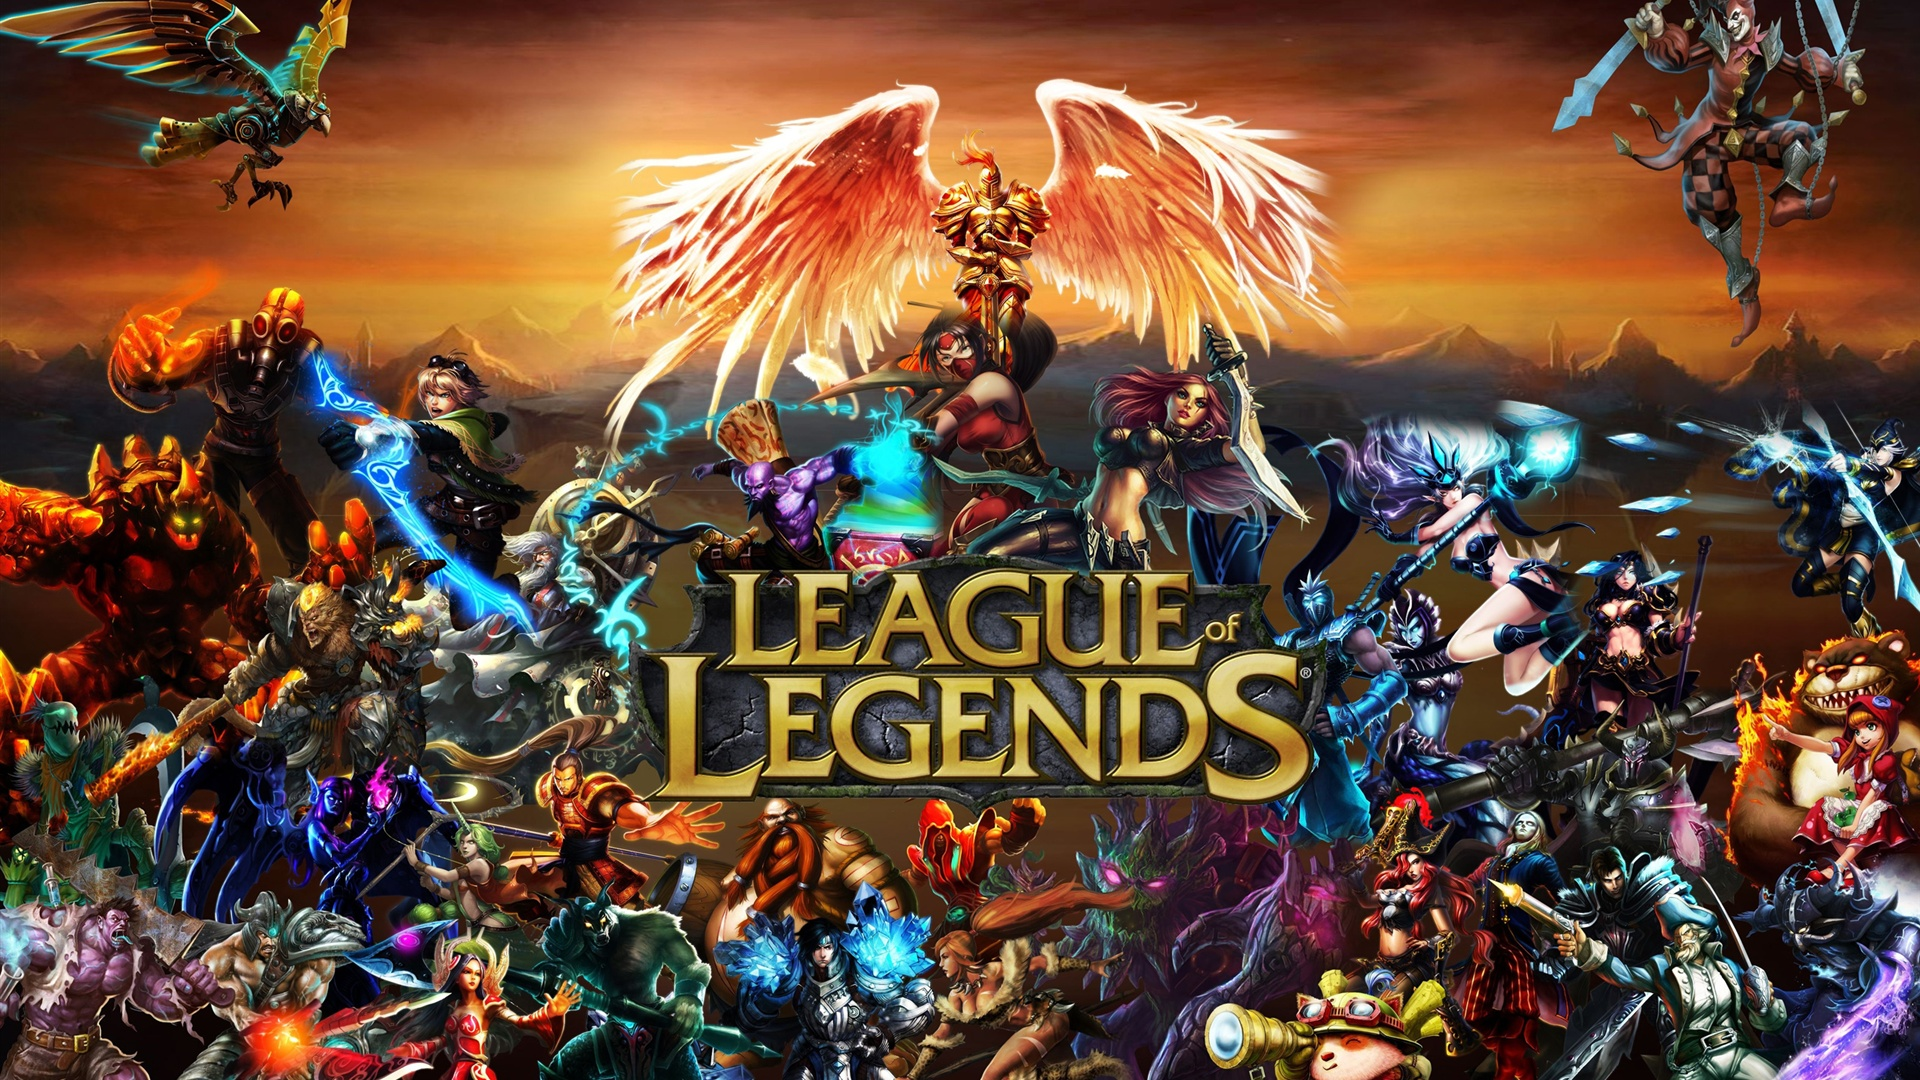 League of Legends - In League of Legends, players assume the role of an unseen